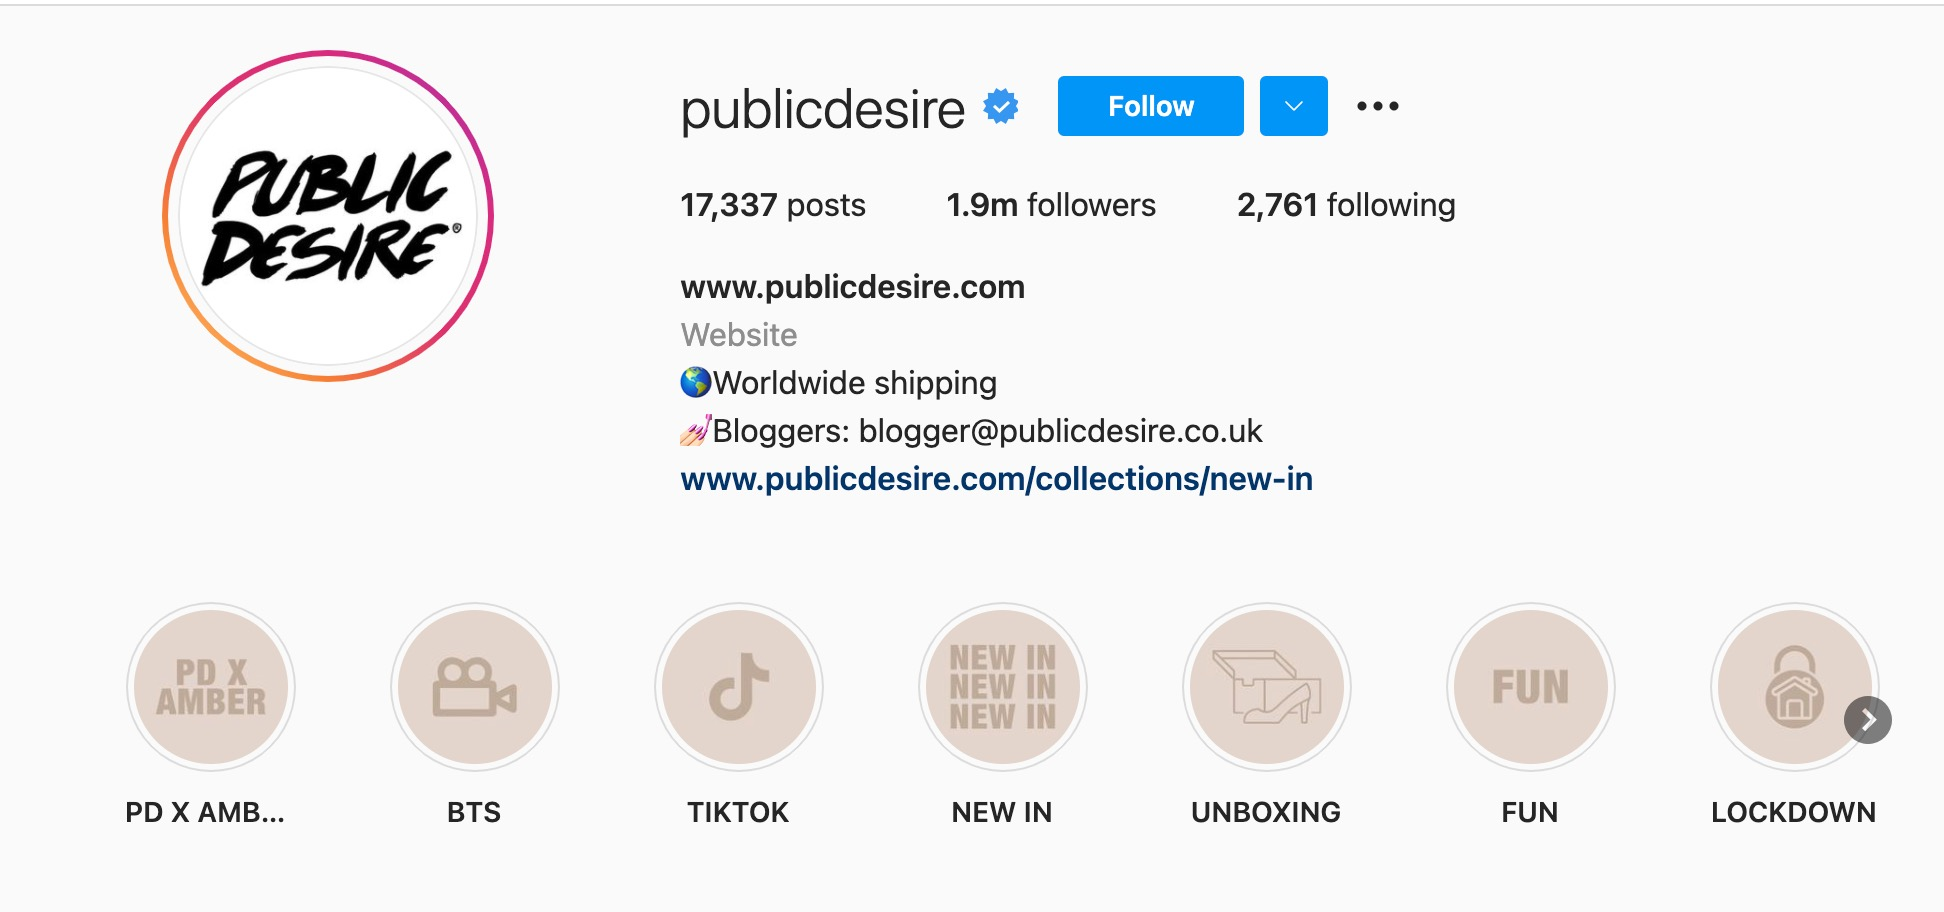 Public Desire Instagram bio page with link to their latest collection